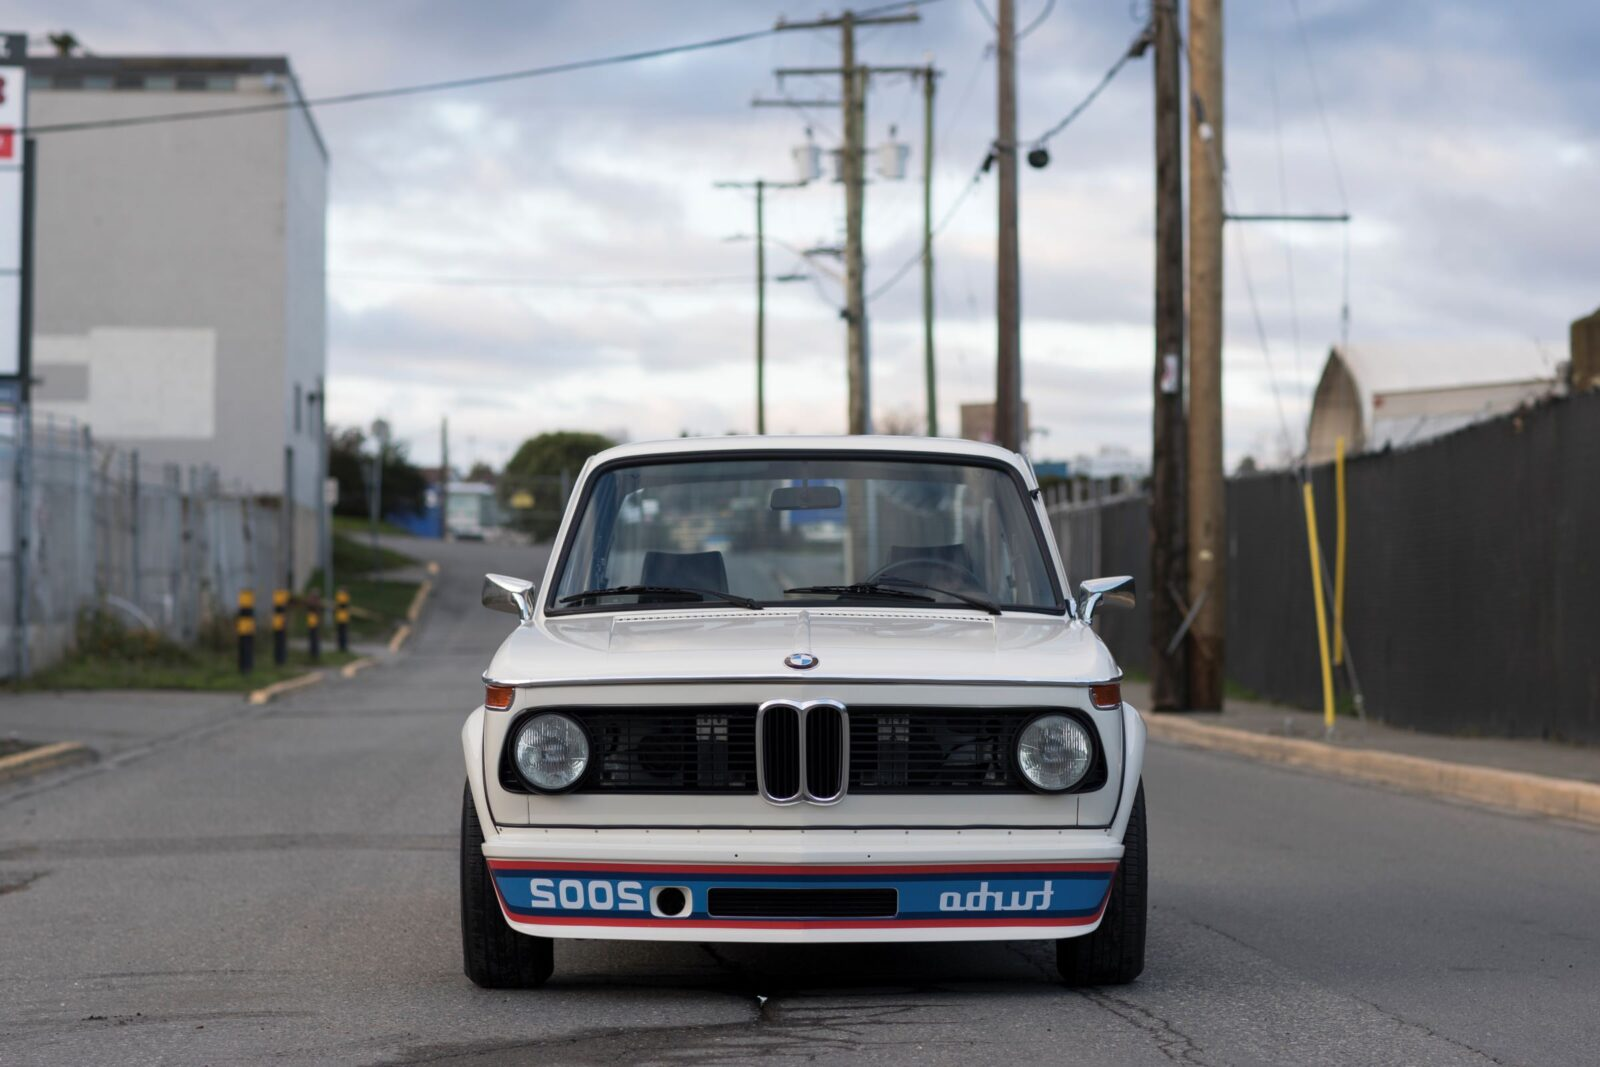 bmw 2002 turbo car 9 1600x1067 - 1974 BMW 2002 Turbo - The Mighty Little BMW That Started It All